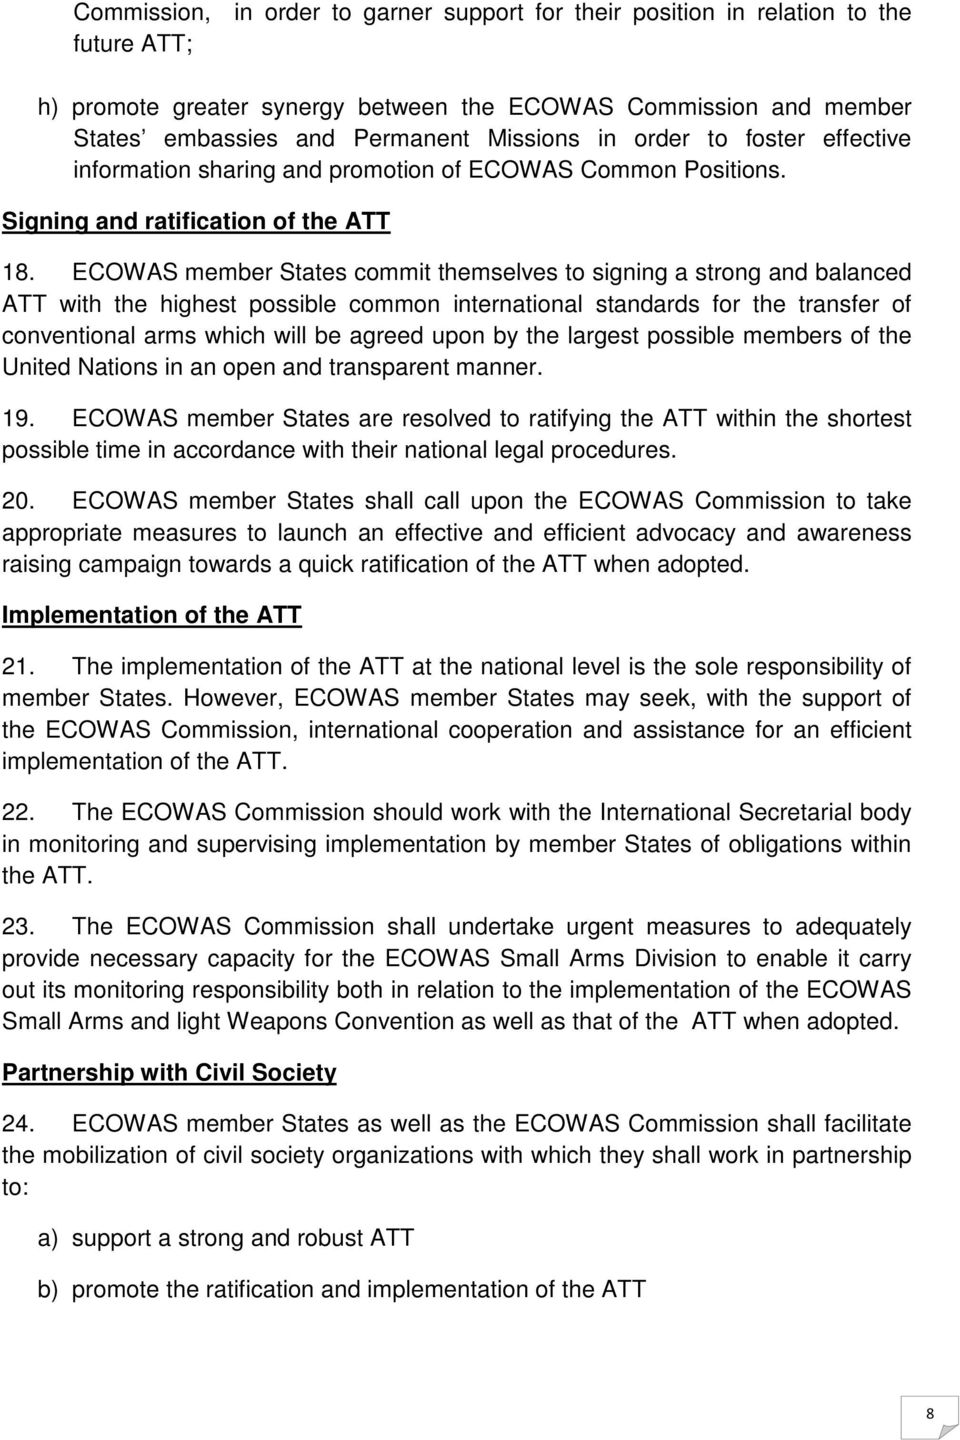 ECOWAS member States commit themselves to signing a strong and balanced ATT with the highest possible common international standards for the transfer of conventional arms which will be agreed upon by